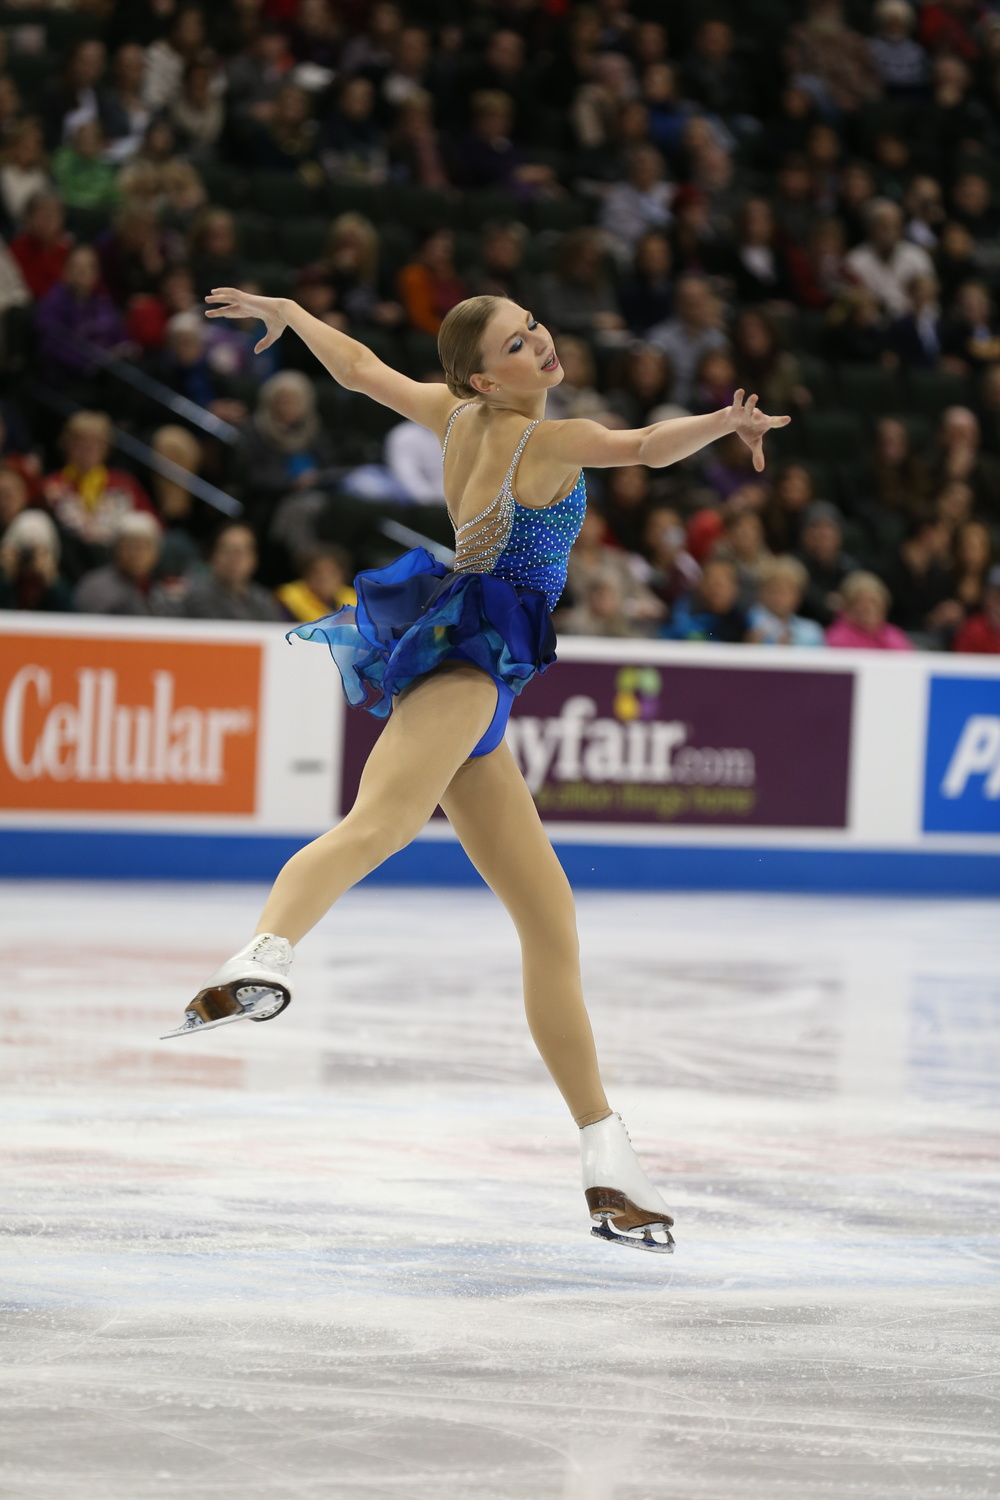 Polina Edmunds winning the short program Thursday at the U.S. Championships.  (Photo: U.S. Figure Skating / Jay Adeff)